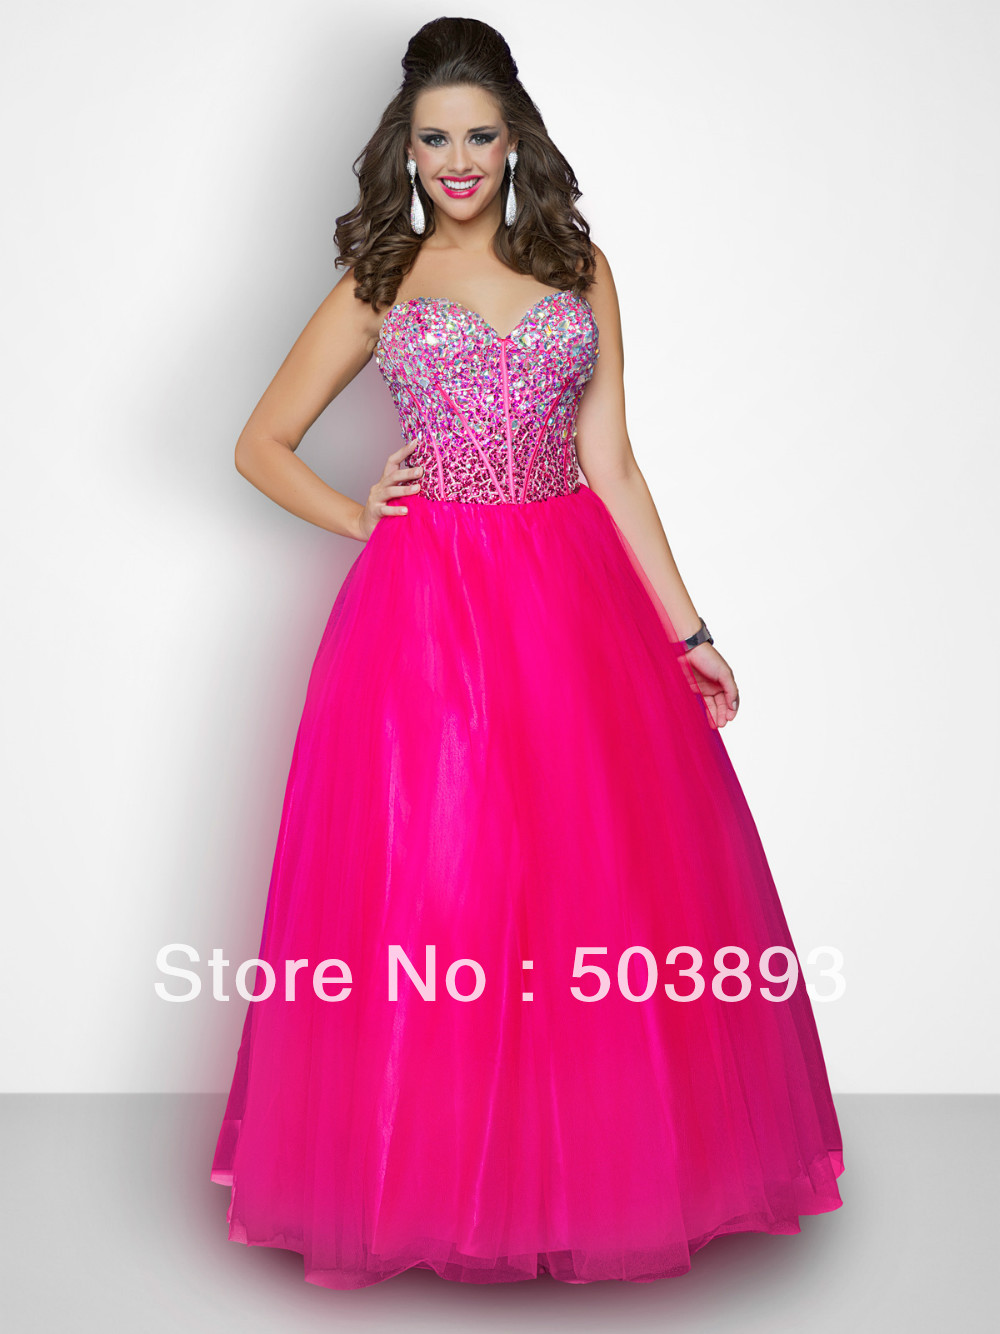 Free Shipping Hot Pink Plus Size Prom Dresses 2014 Crystal Prom Gown